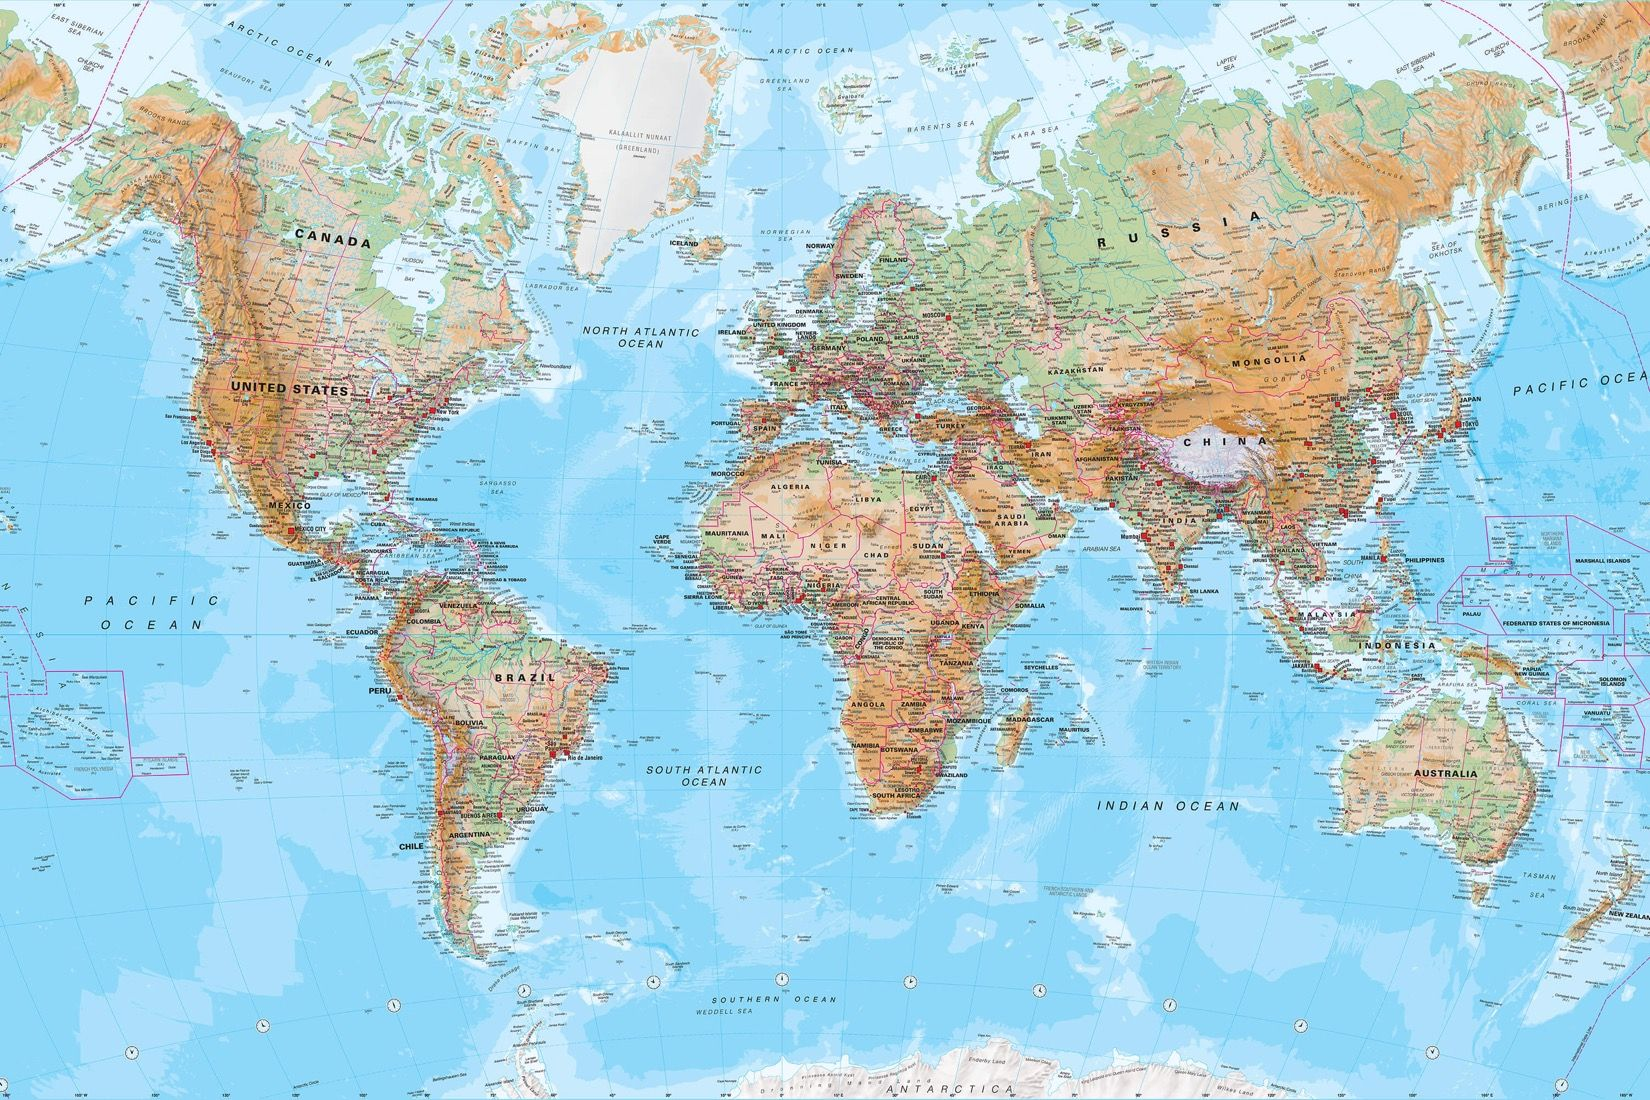 Physical world map wallpaper mural muralswallpaper project physical world map wall mural custom made to suit your wall size by the uks no1 for wall murals custom design service and express delivery available gumiabroncs Image collections